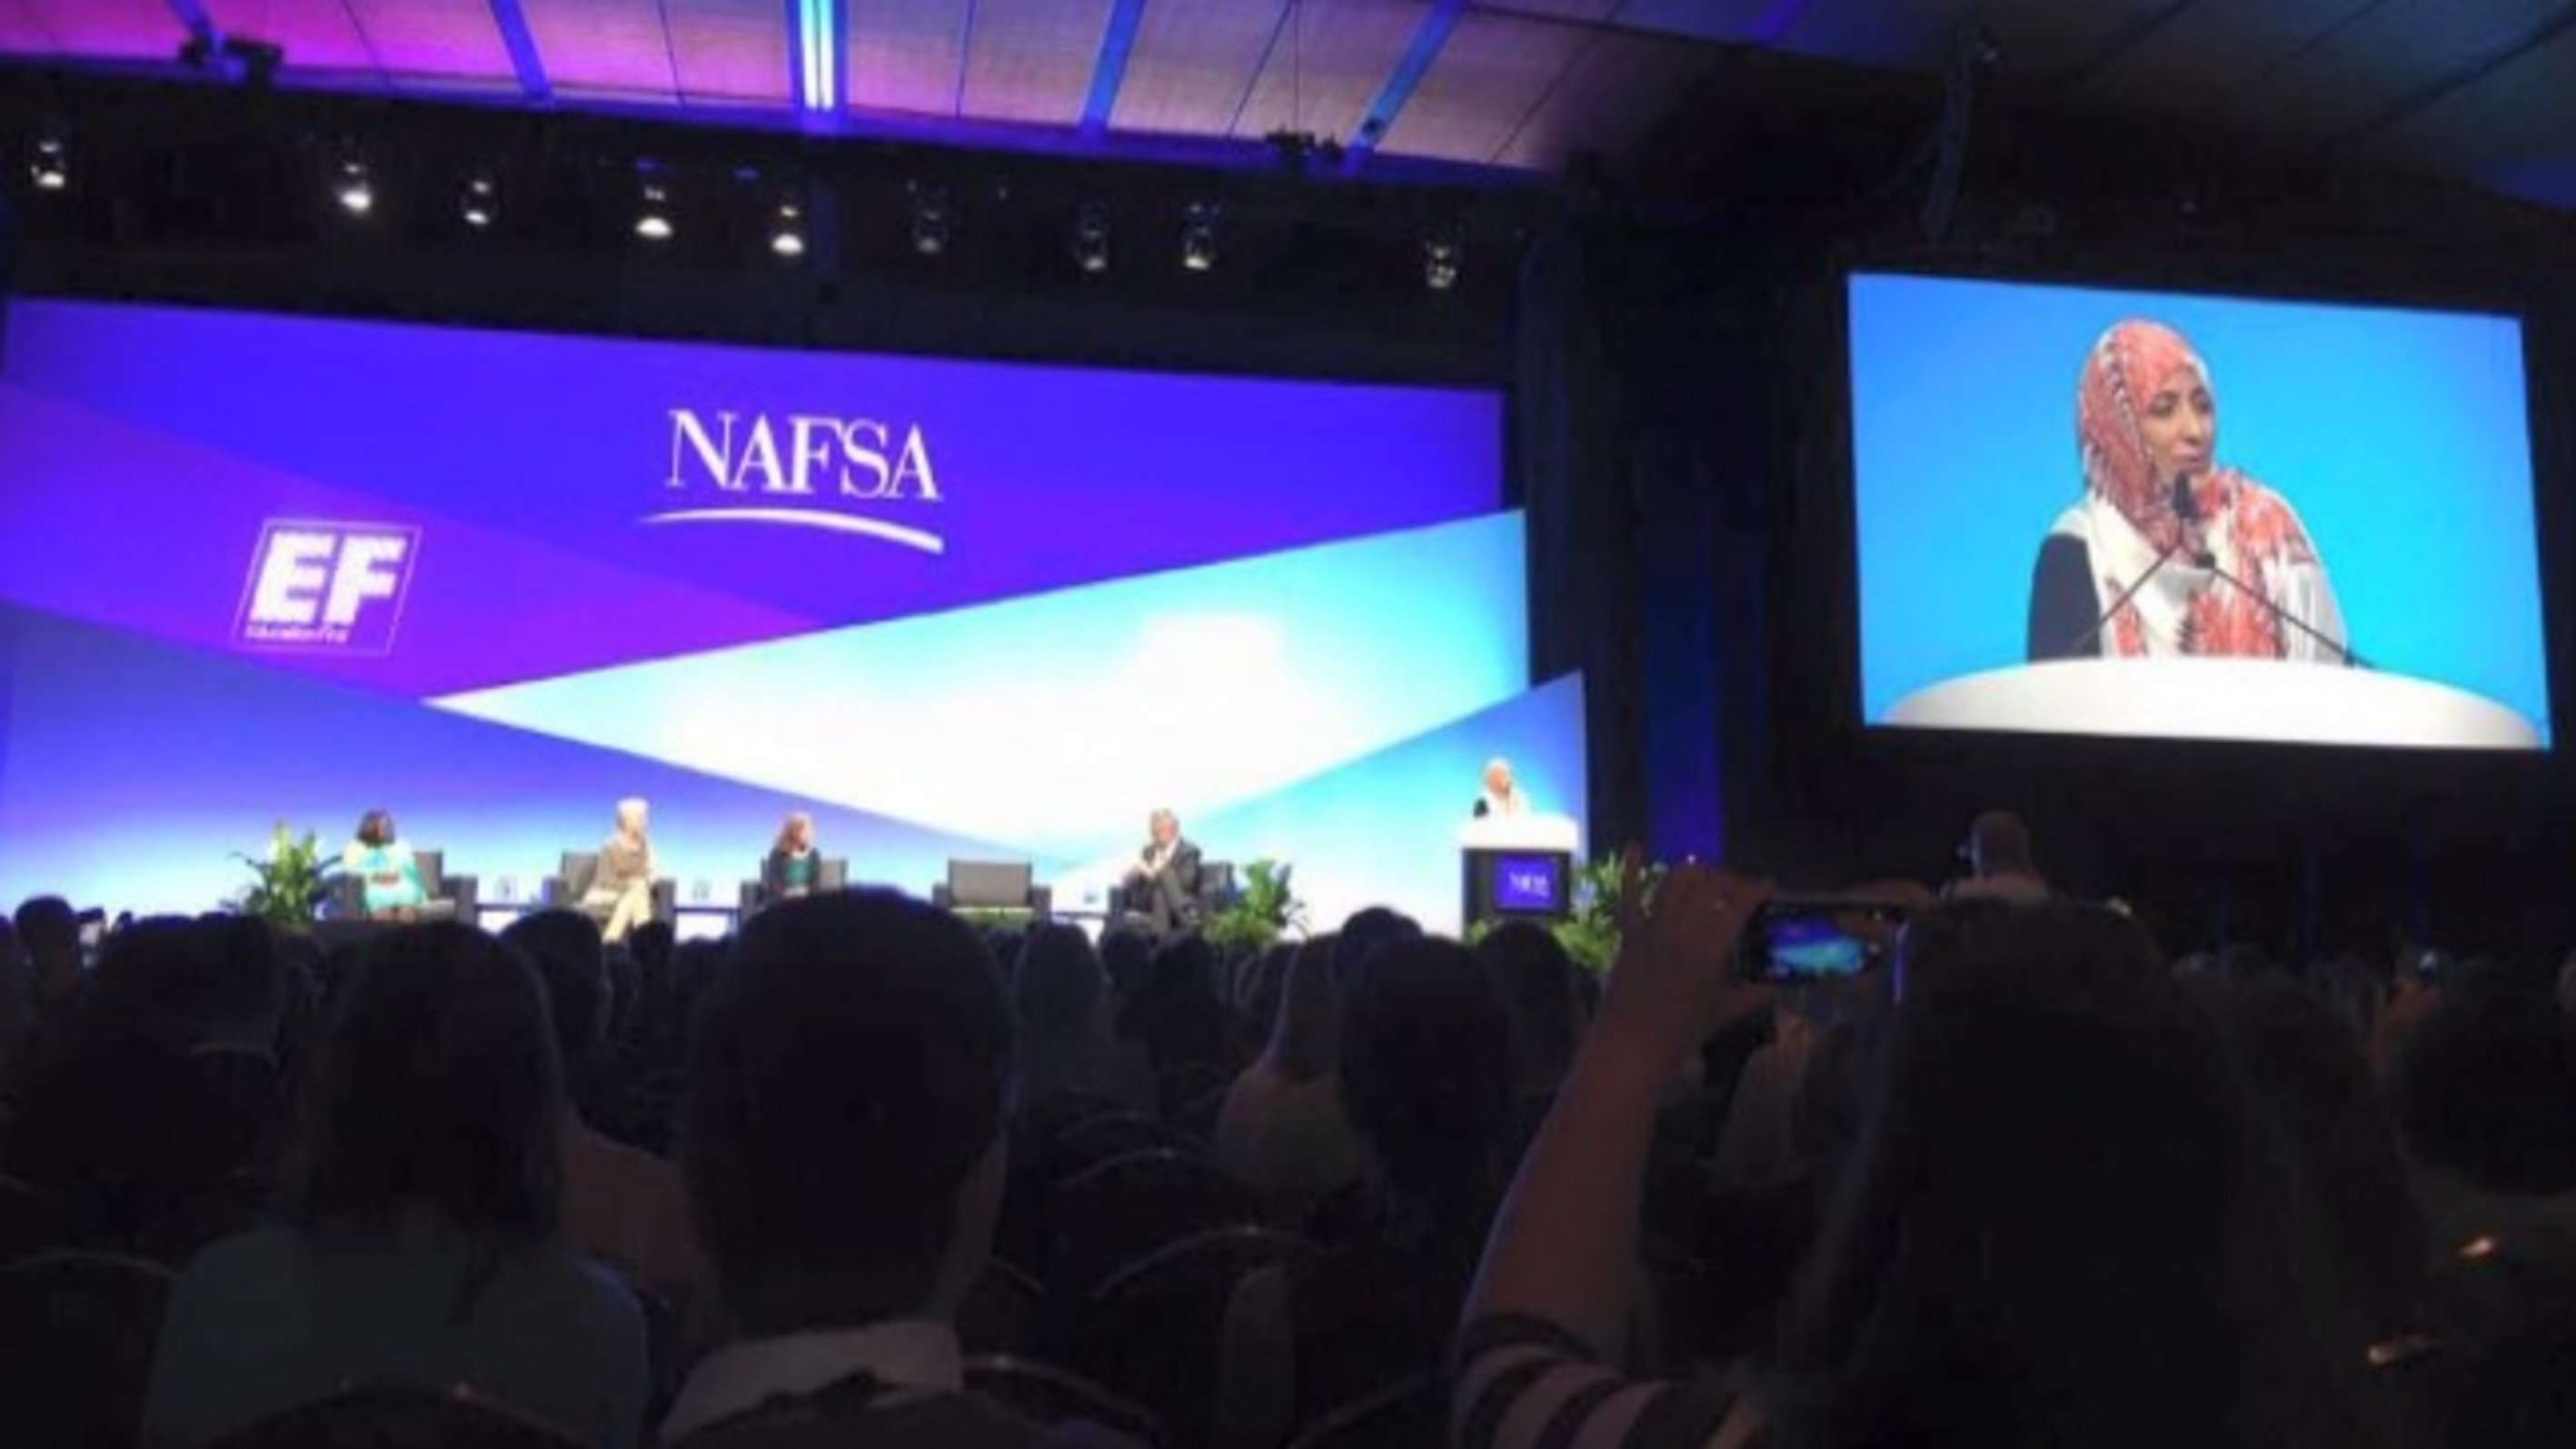 Tawakkol Karman to Speach at NAFSA 2015 International Education Conference in Boston